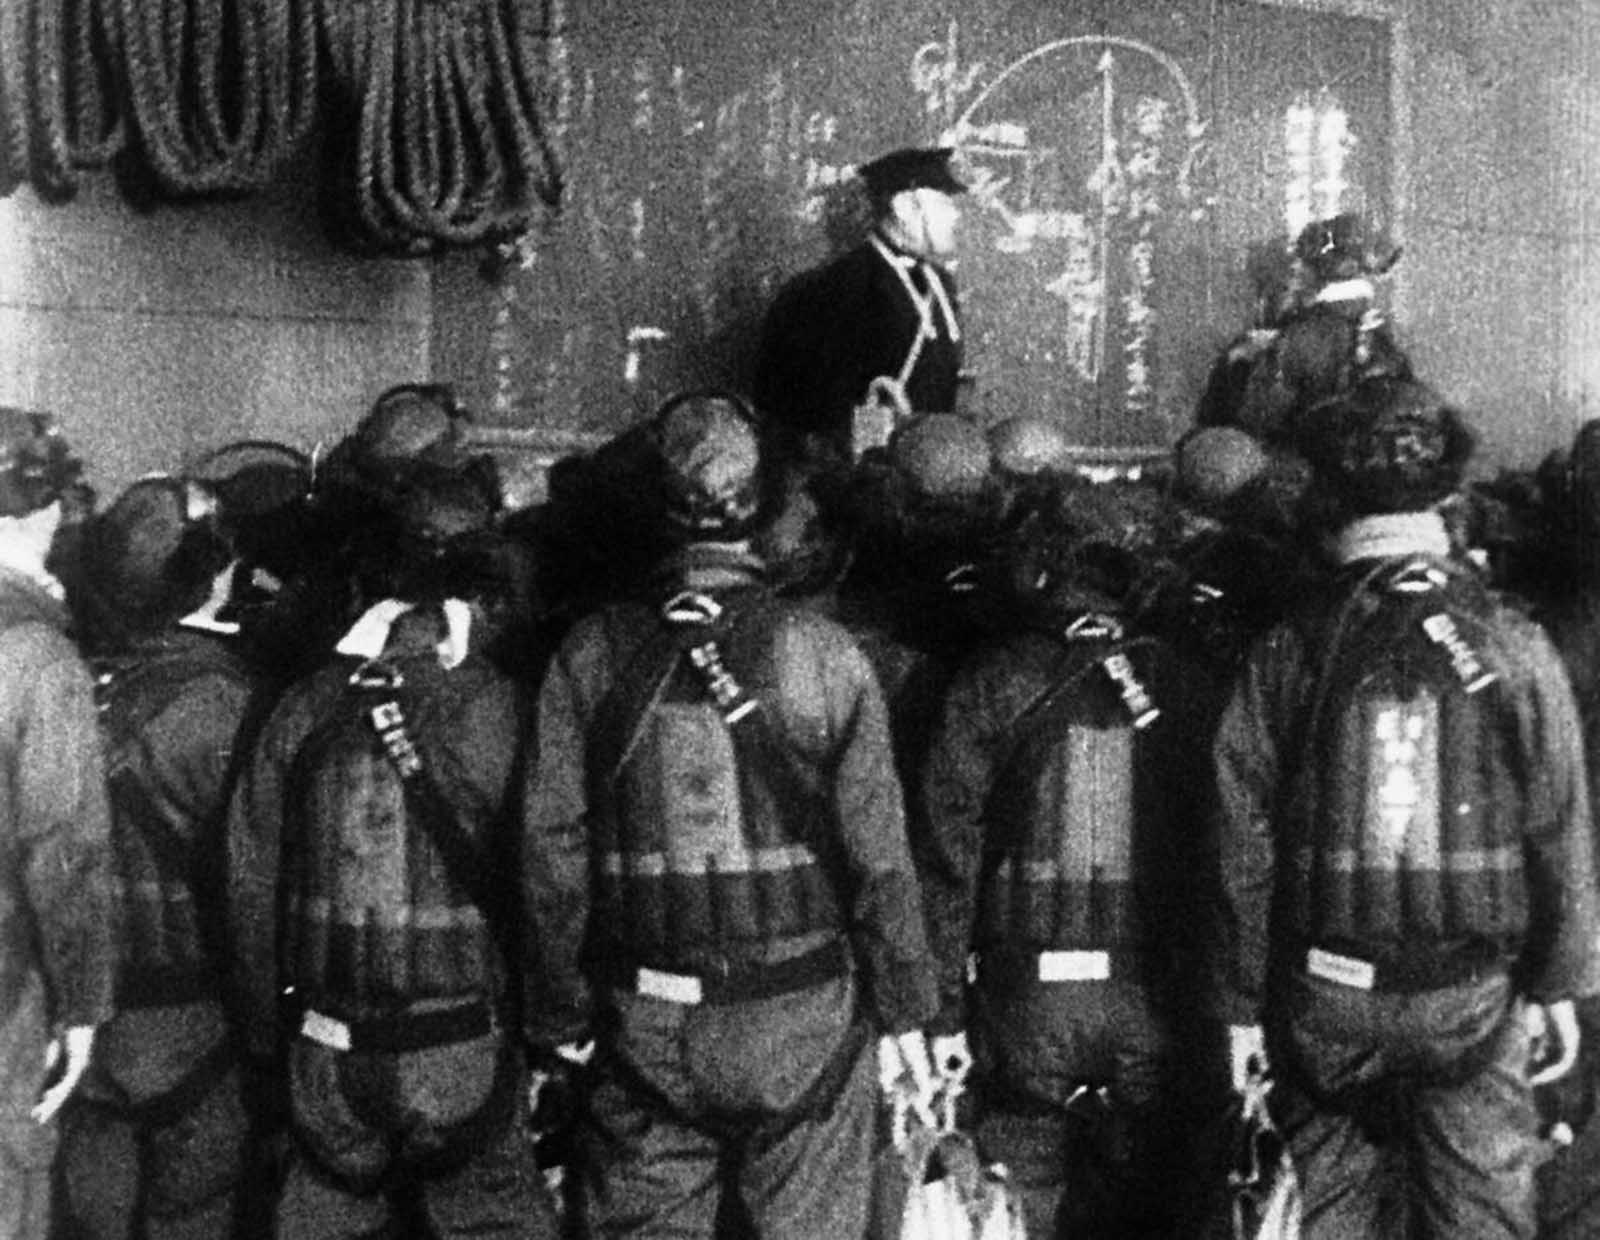 Japanese pilots get instructions aboard an aircraft carrier before the attack on Pearl Harbor, in this scene from a Japanese newsreel. It was obtained by the U.S. War Department and released to U.S. newsreels.